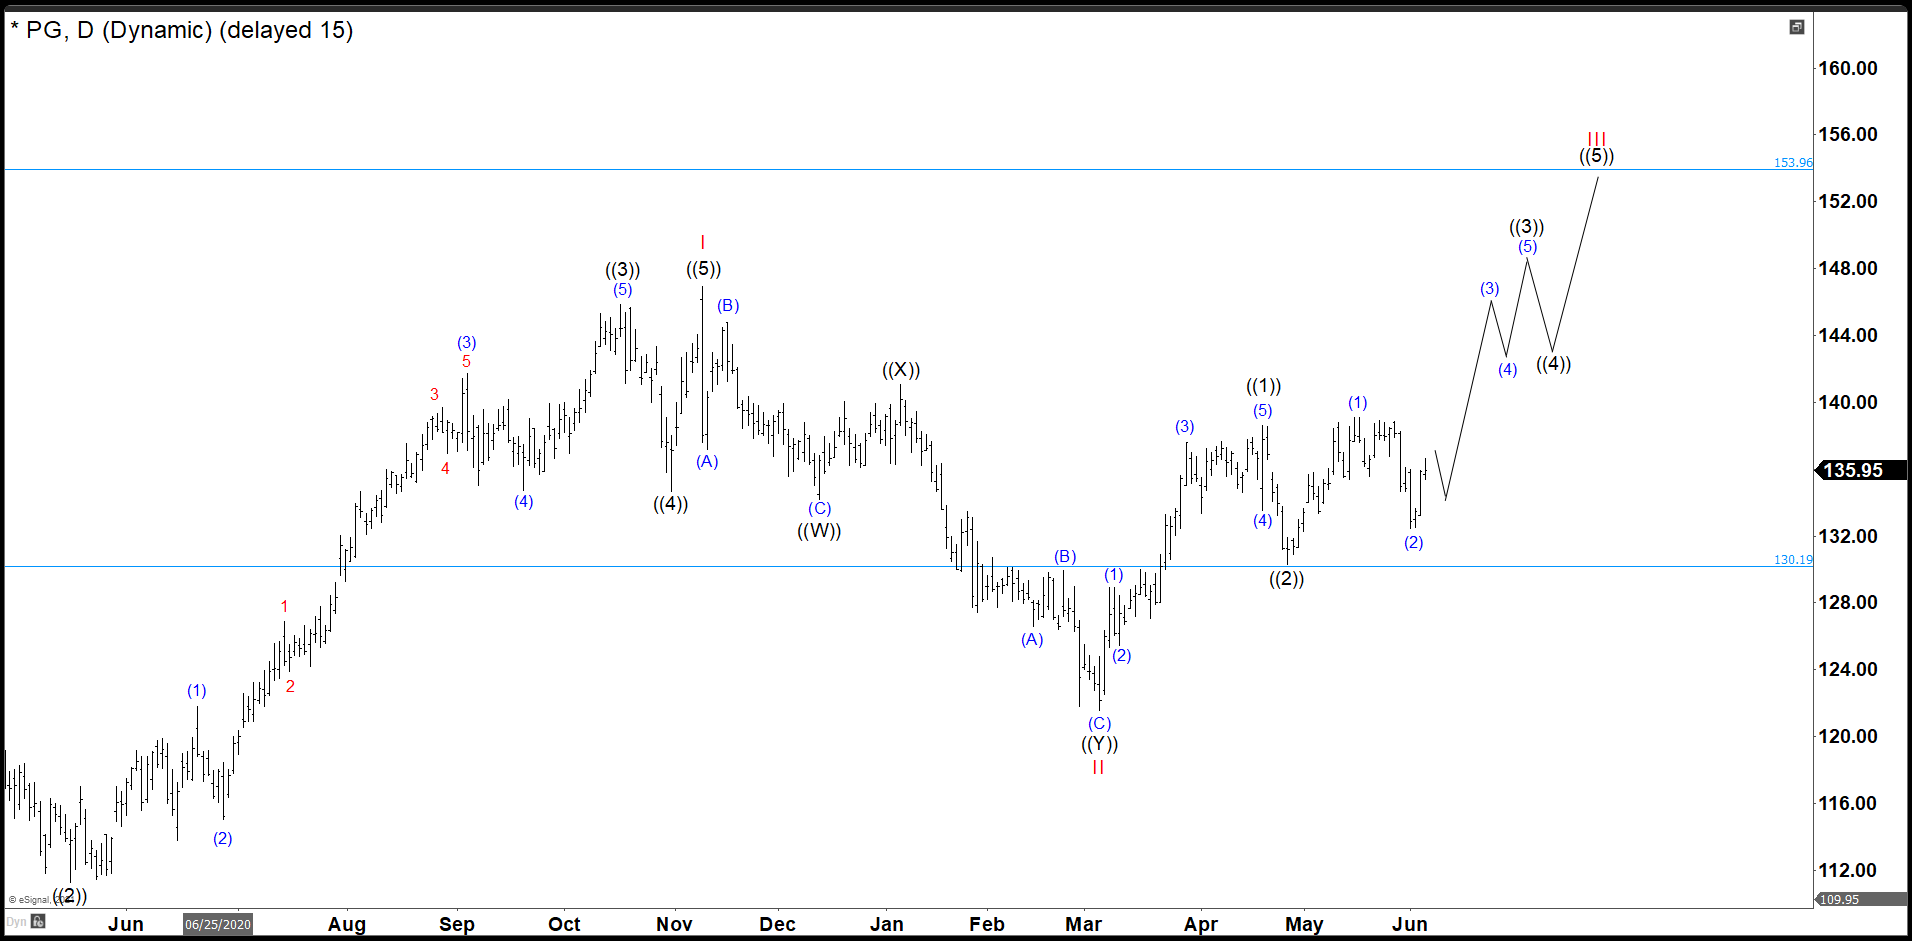 P&G Is Still On Track In Wave ((3)) Pullback Was Deep